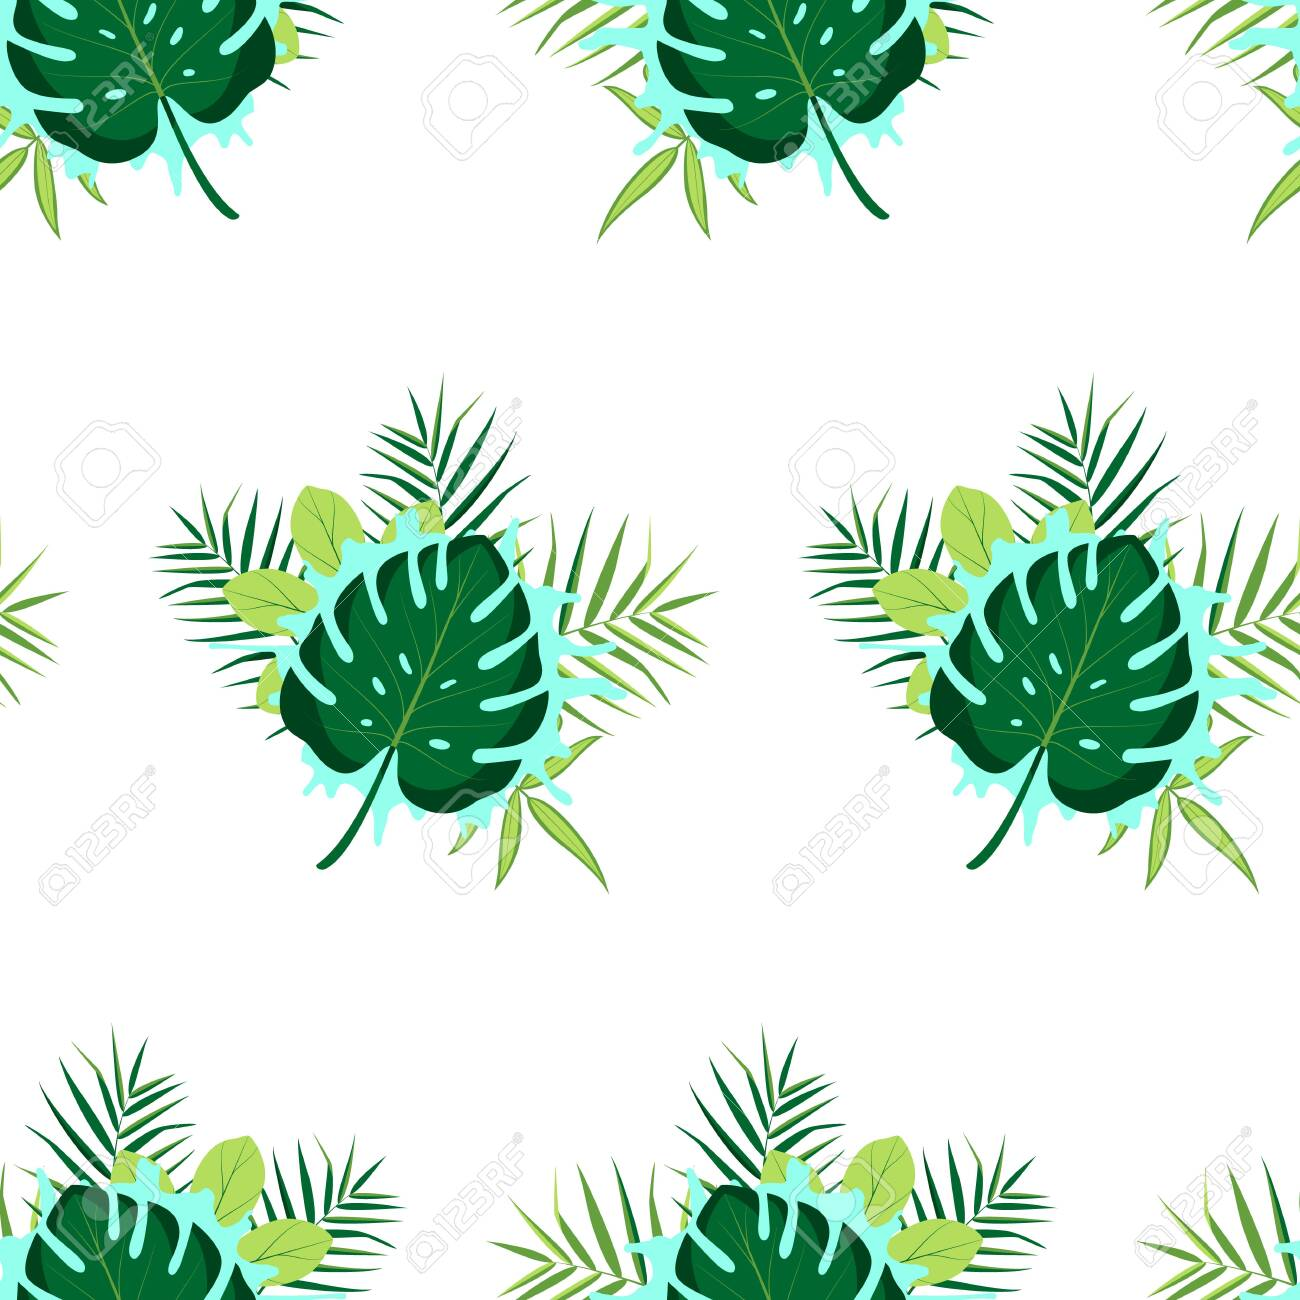 Tropical seamless pattern with leaves. Vector illustration. - 146843682